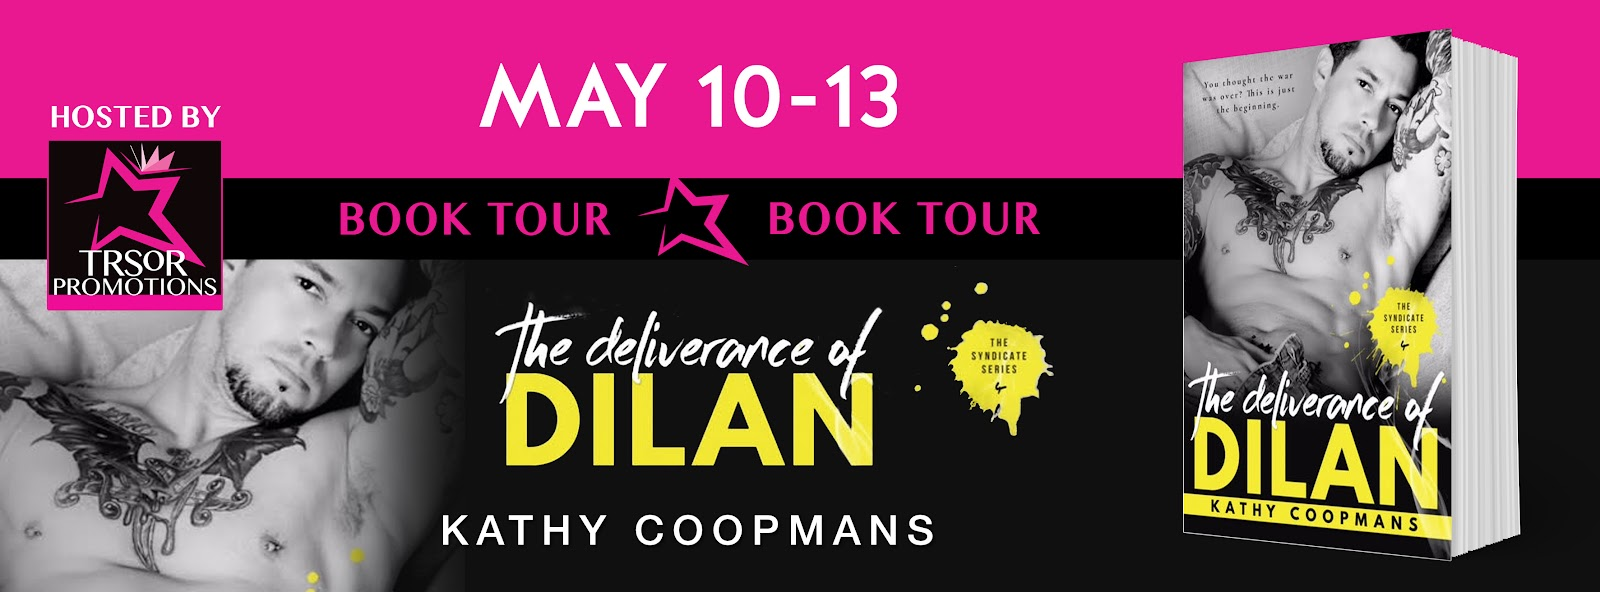 DELIVERANCE_DILAN_BOOK_TOUR.jpg